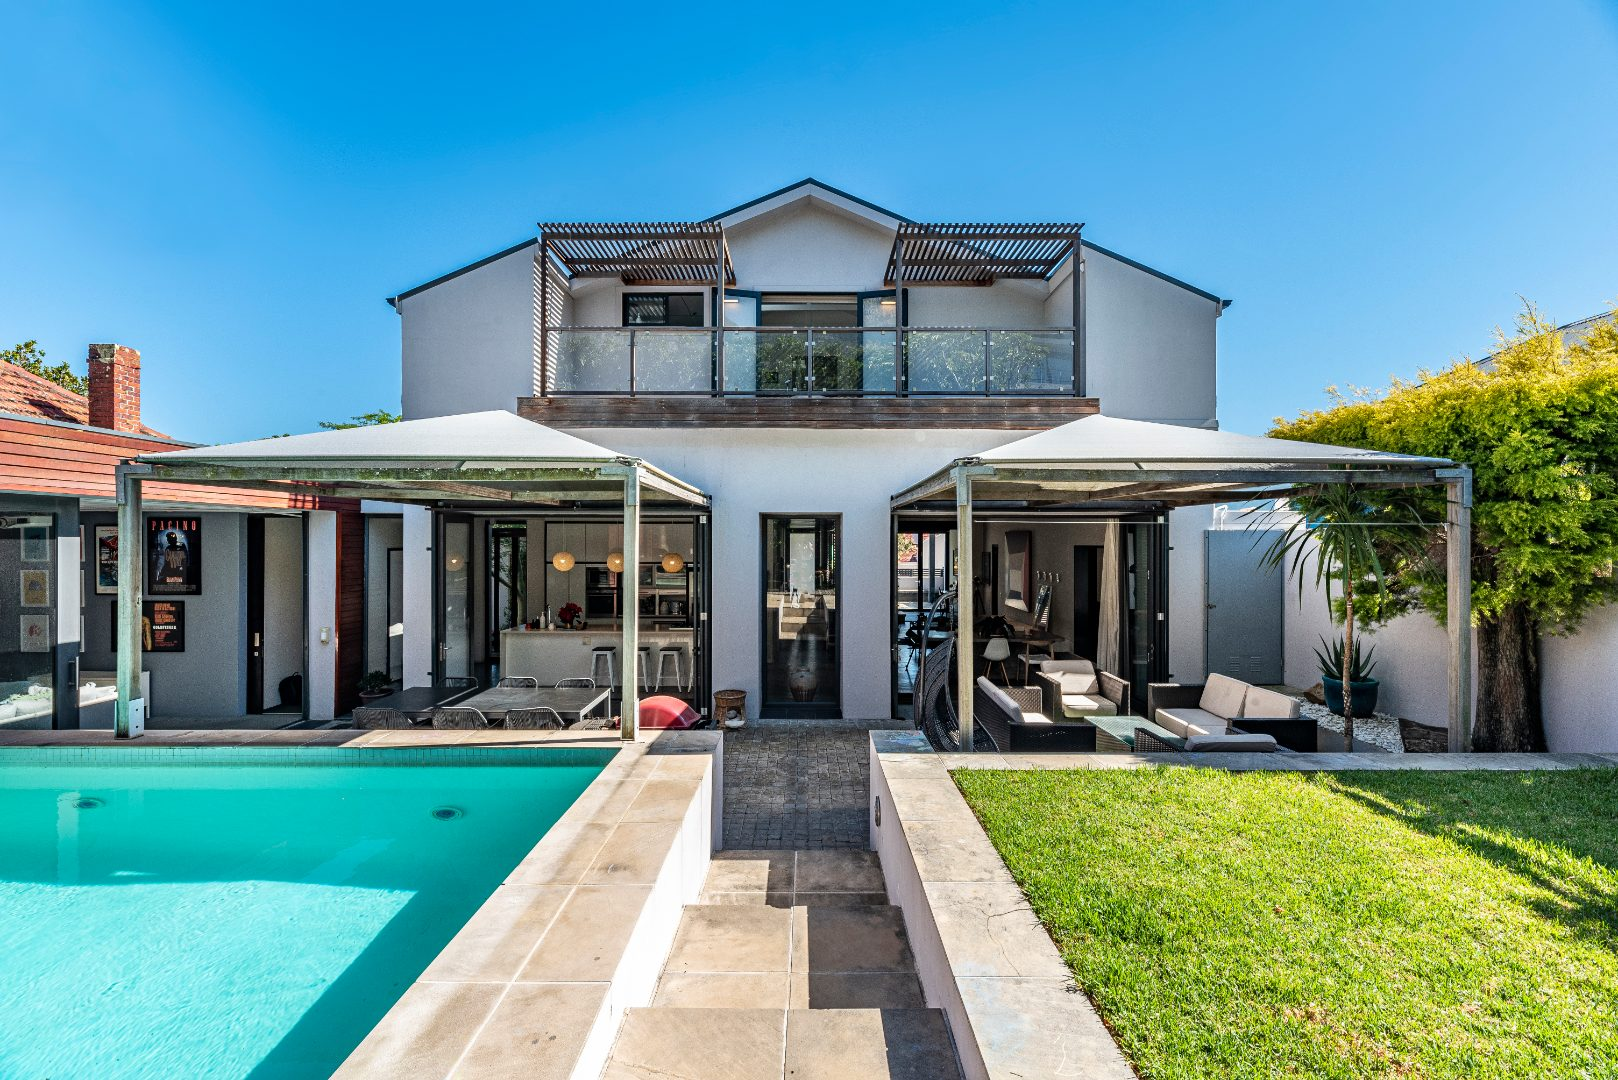 5 Bedroom House For Sale in Vredehoek | RE/MAX™ of Southern Africa